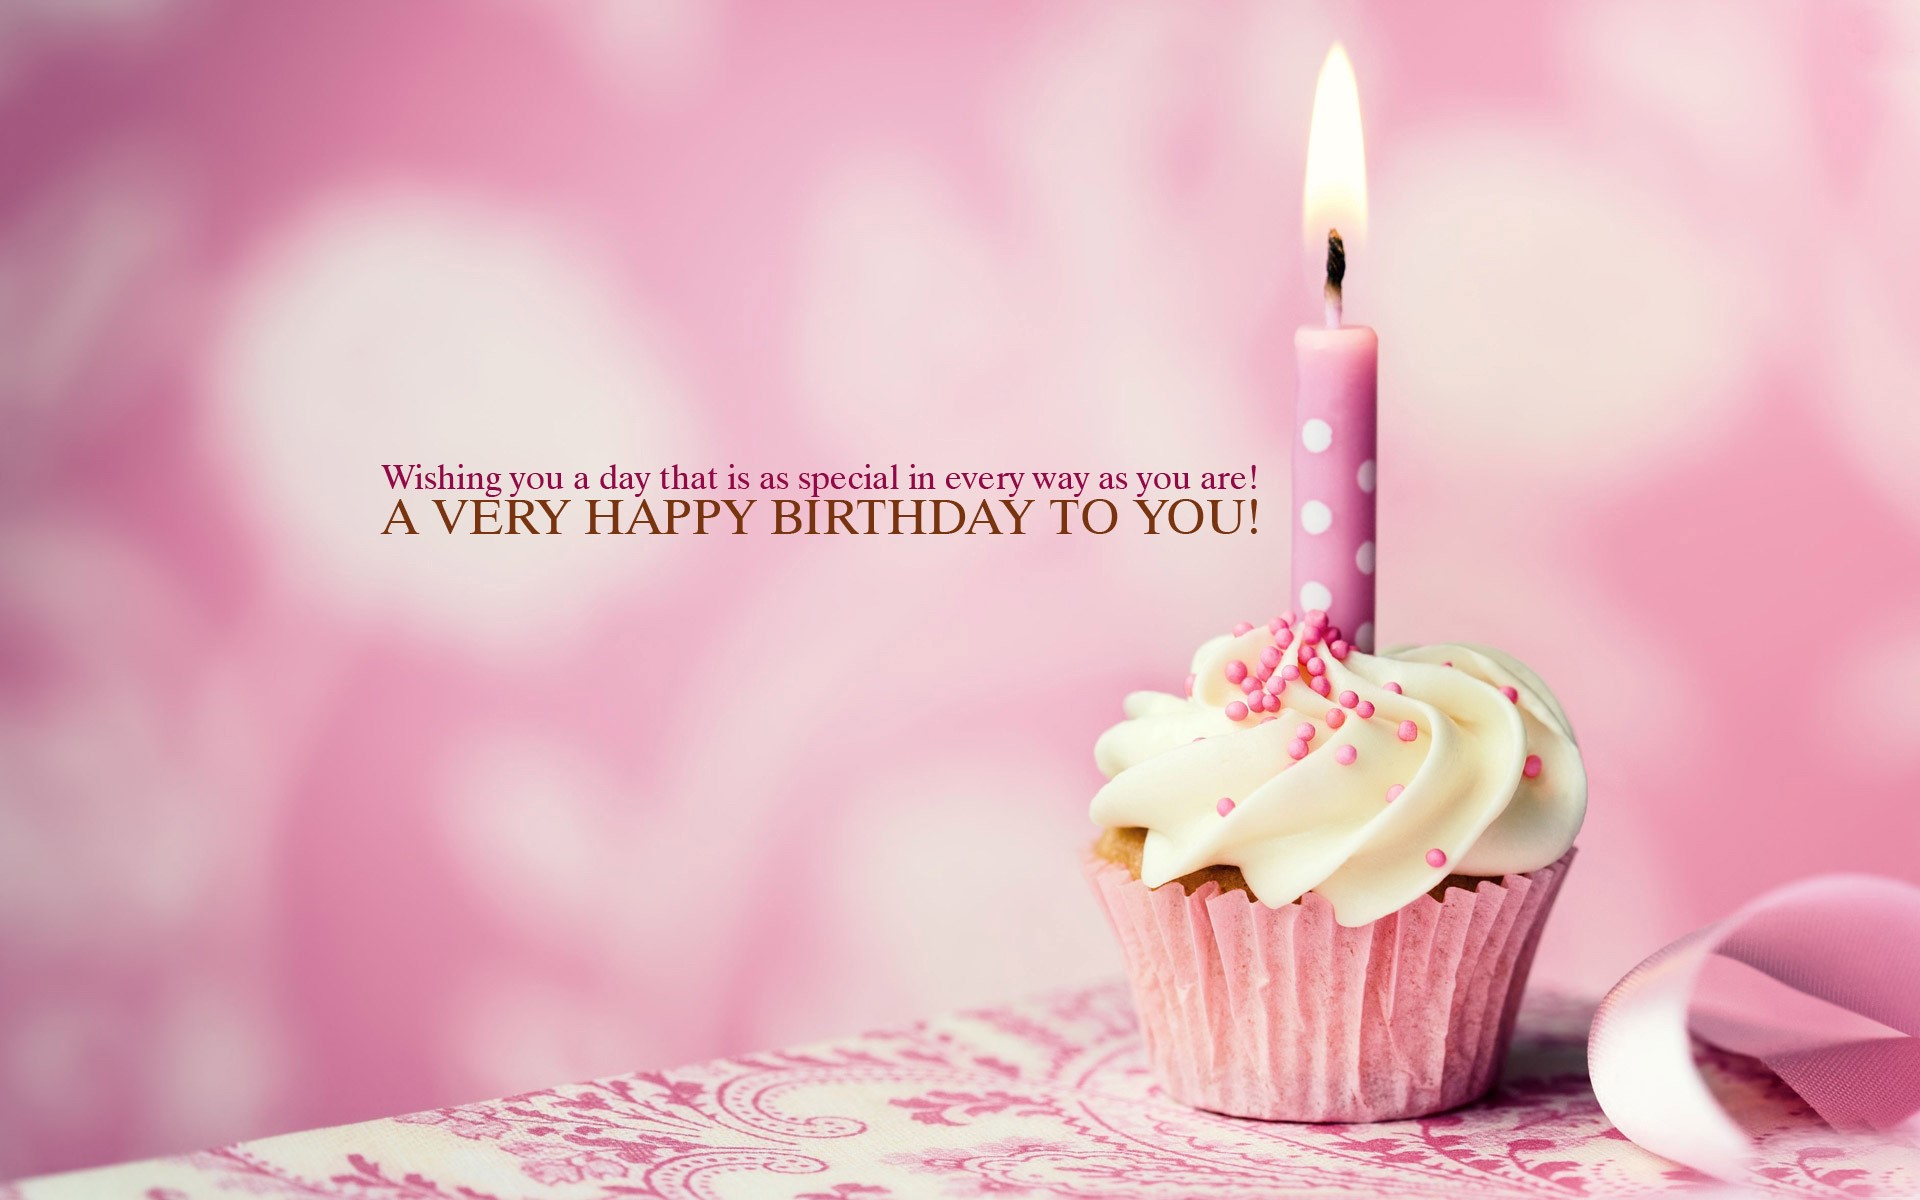 75 Inspirational Happy Birthday Quotes And Wishes With Images